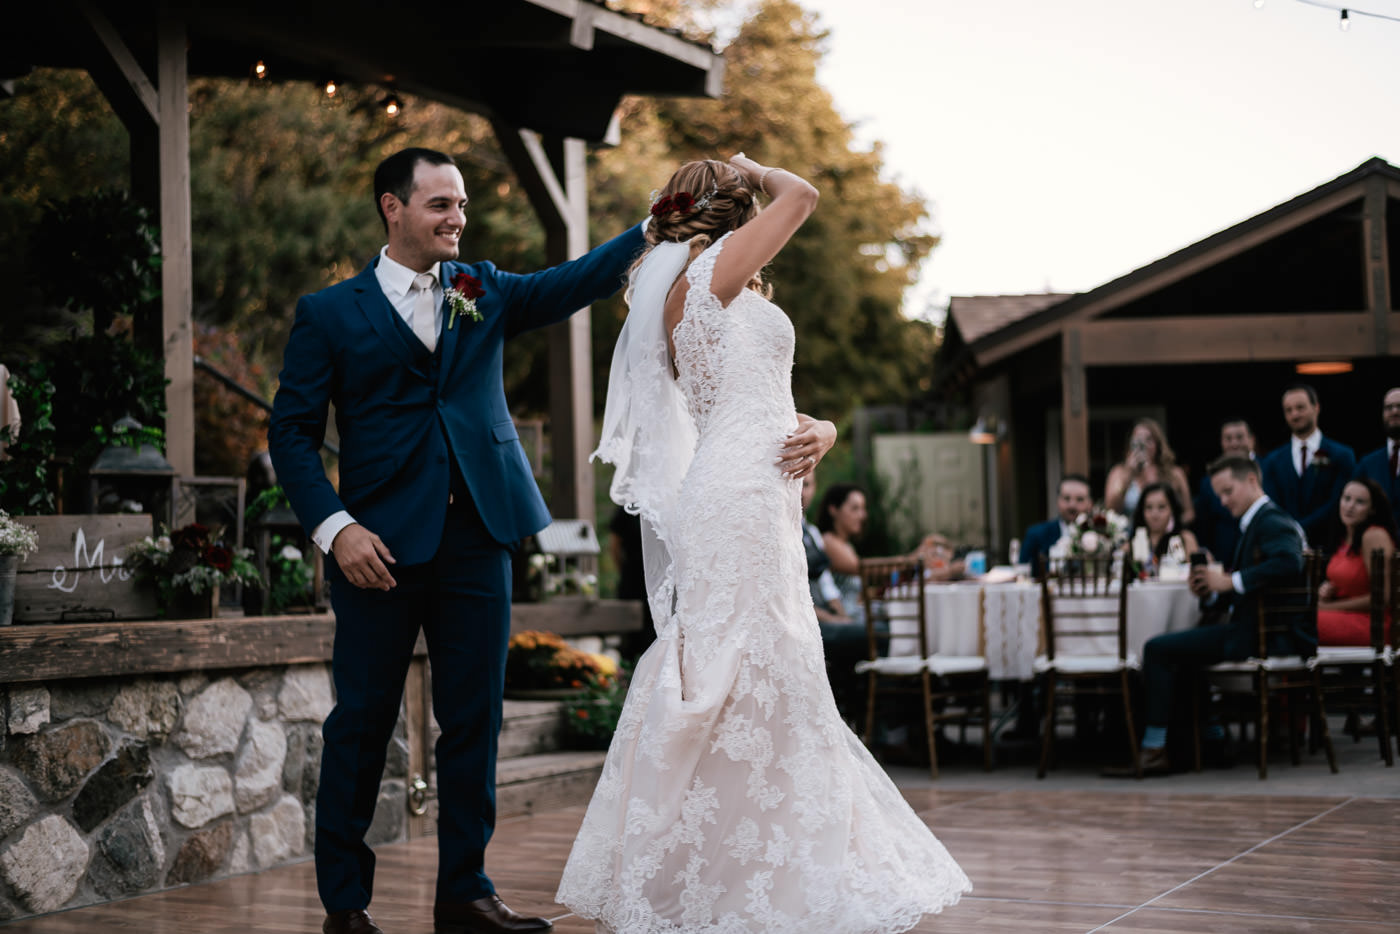 Groom gives his wife a twirl on the dance floor at their wedding reception at The Homestead.